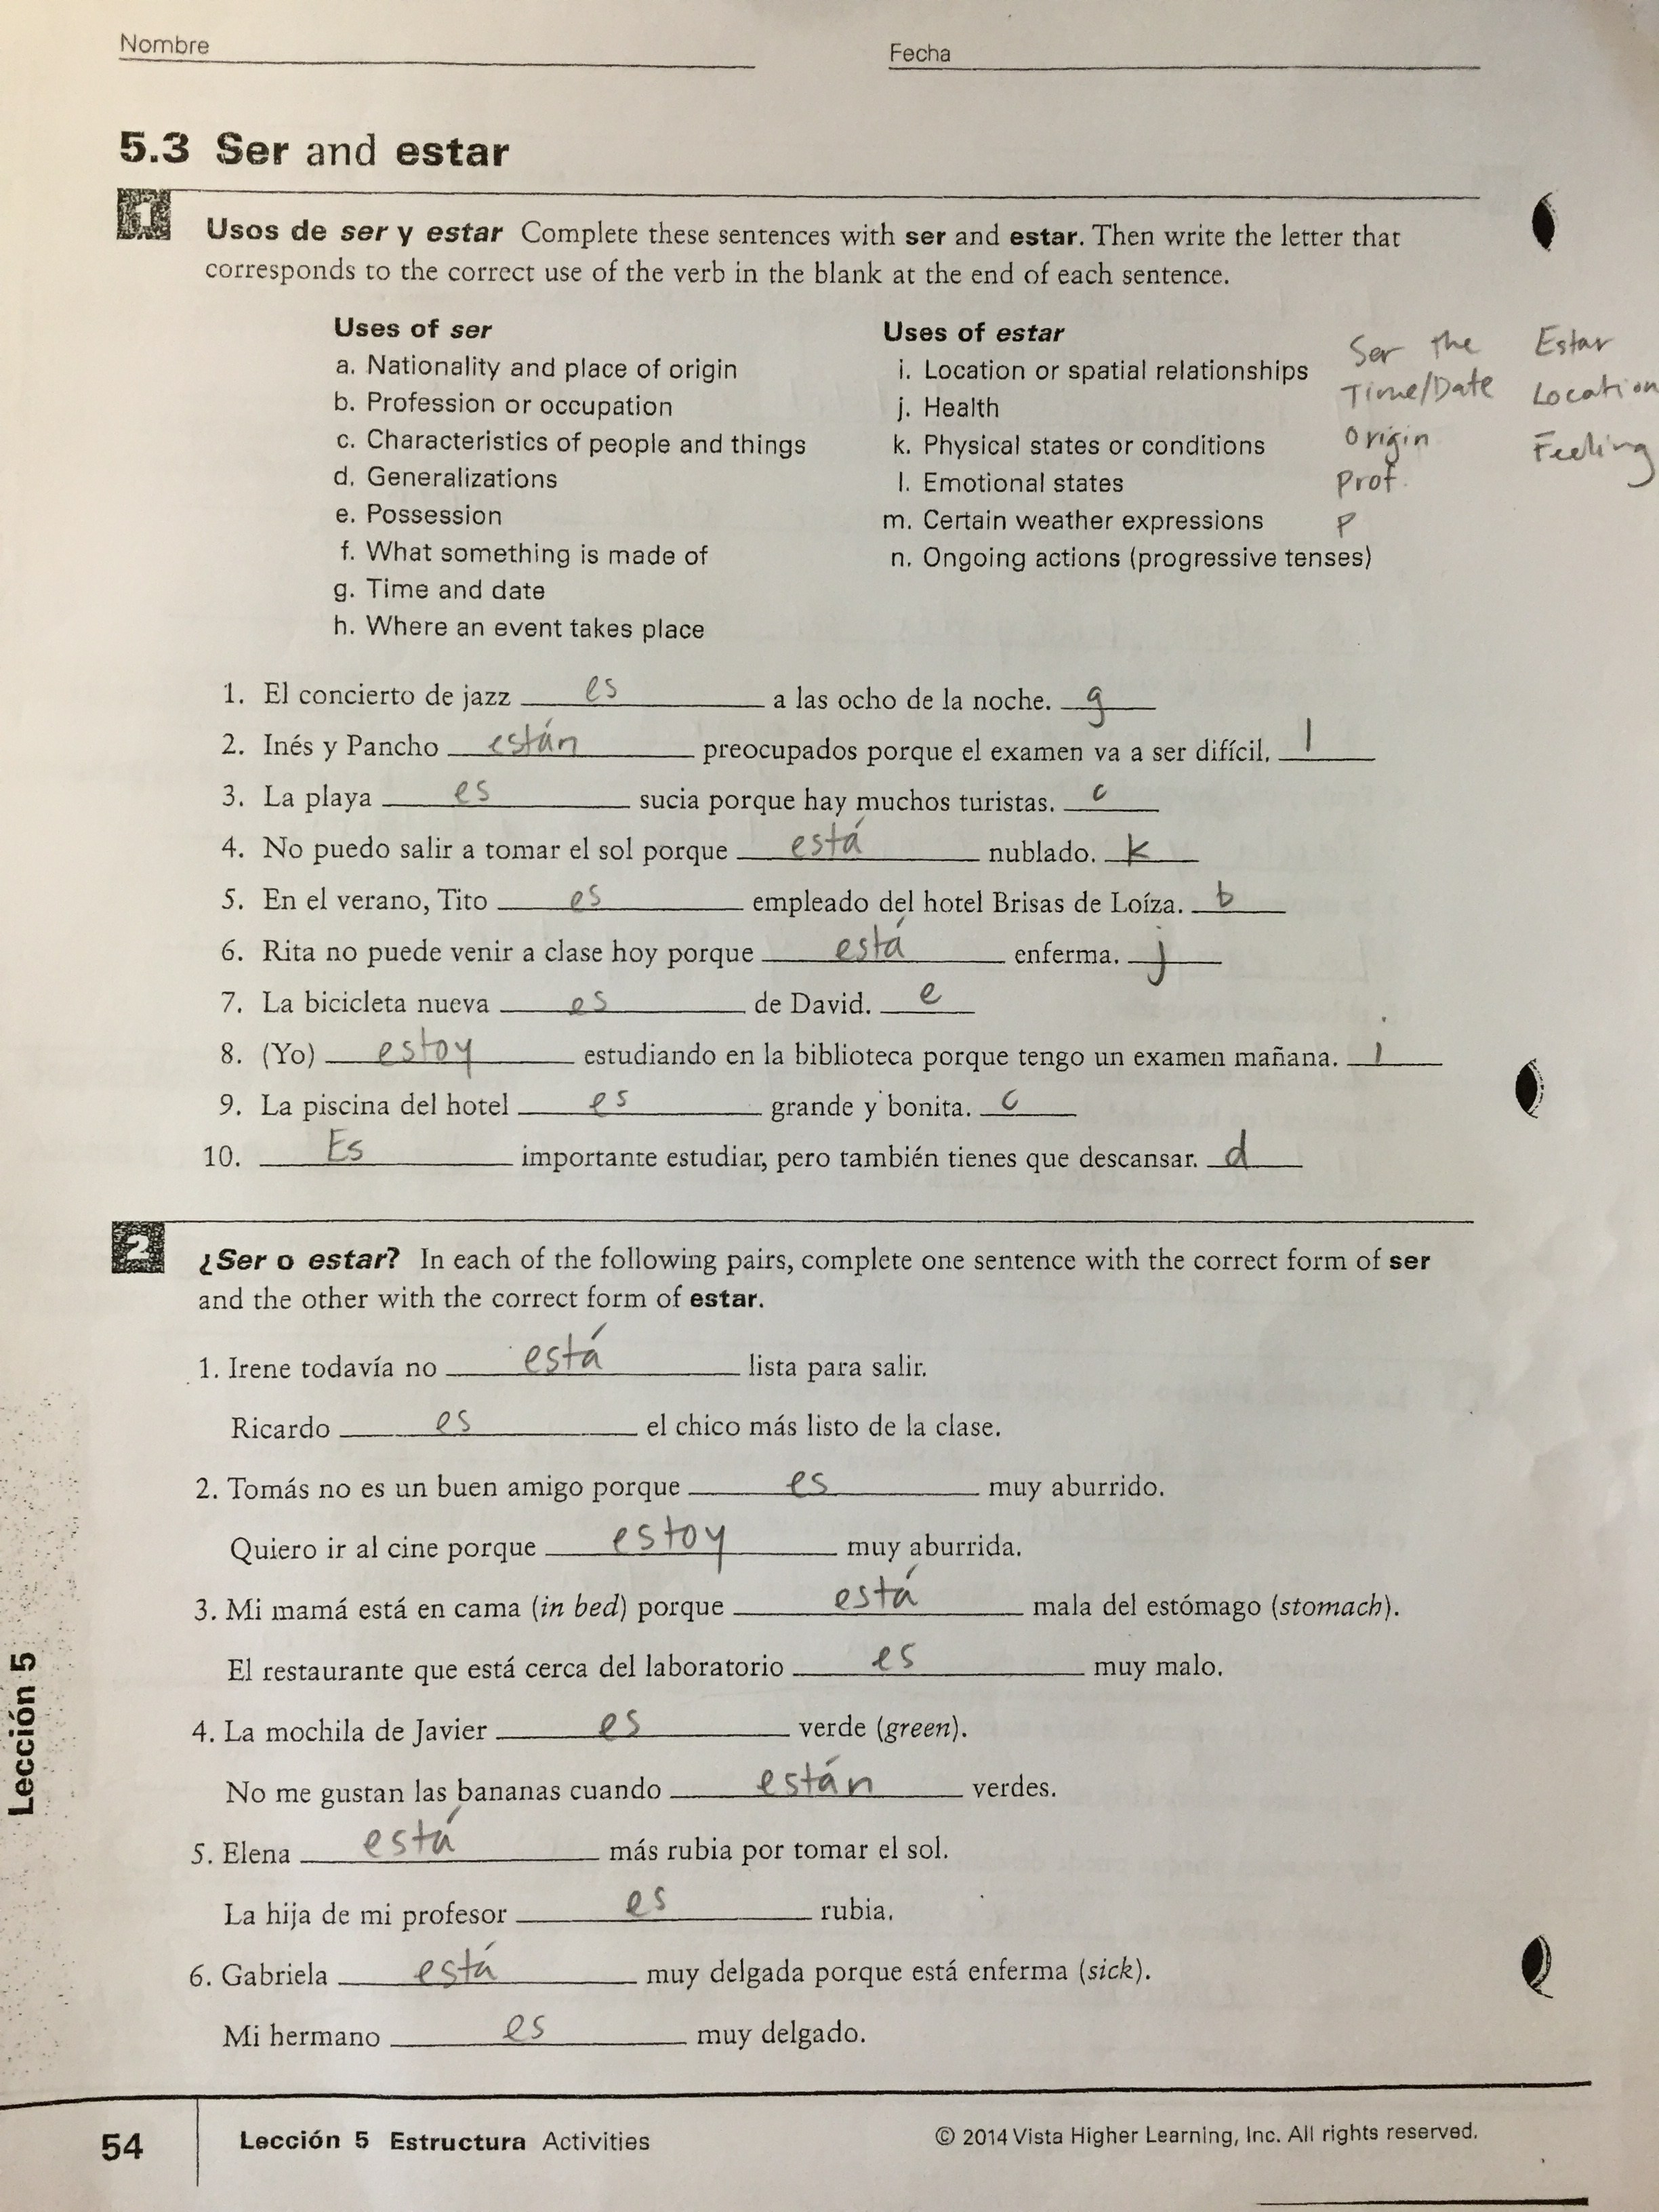 worksheet Acabar De Worksheet thurgood marshall middle school ser vs estar worksheet answers